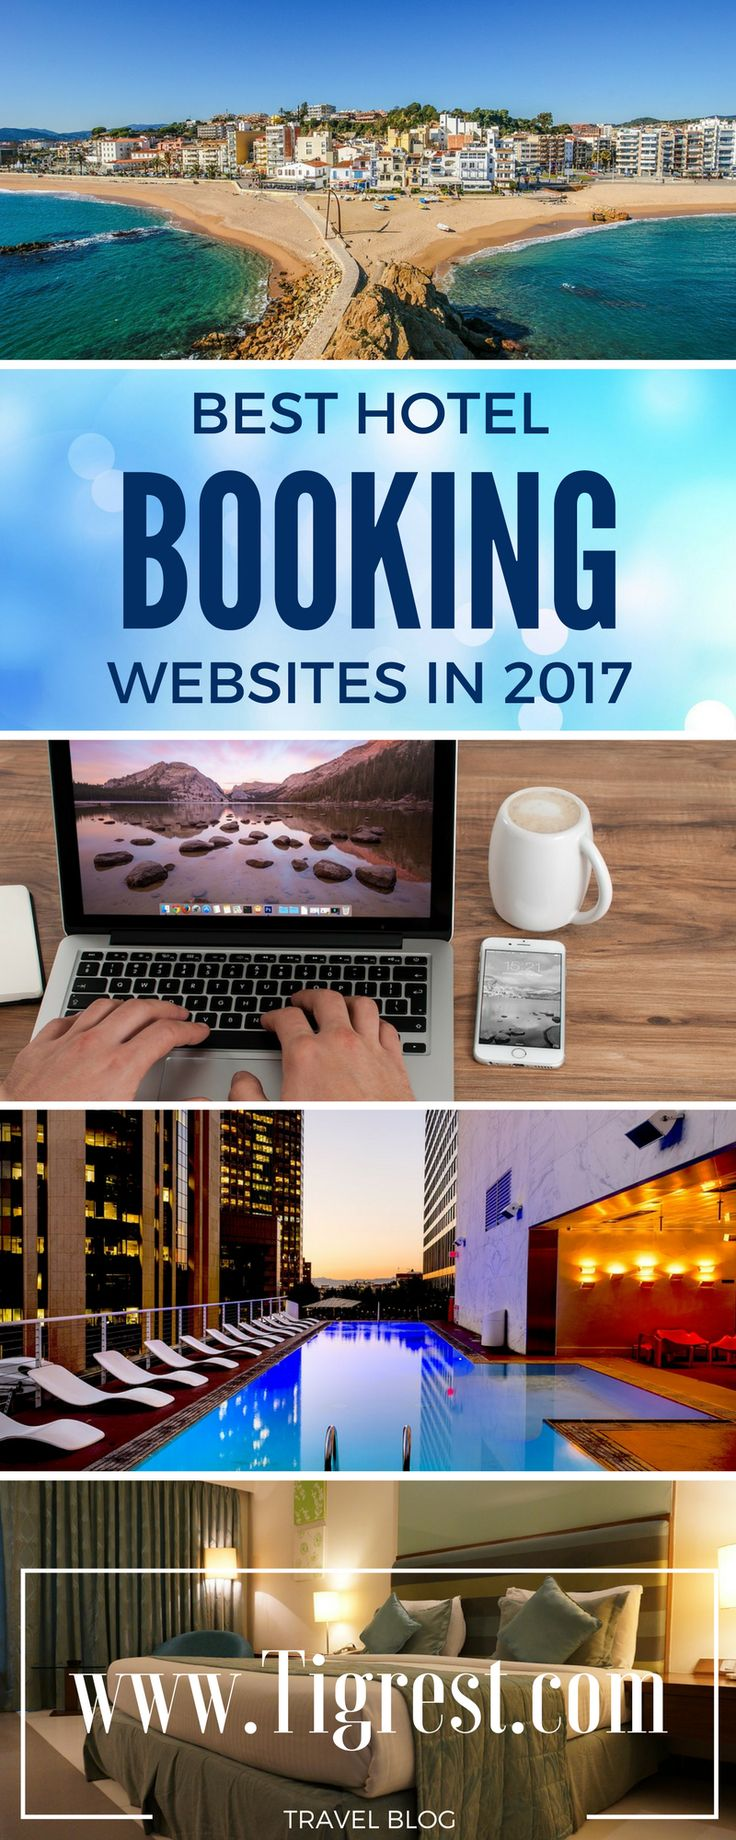 Best hotel booking websites in 2017 - why do we need them, which ones are the best and why, where to look for good rates